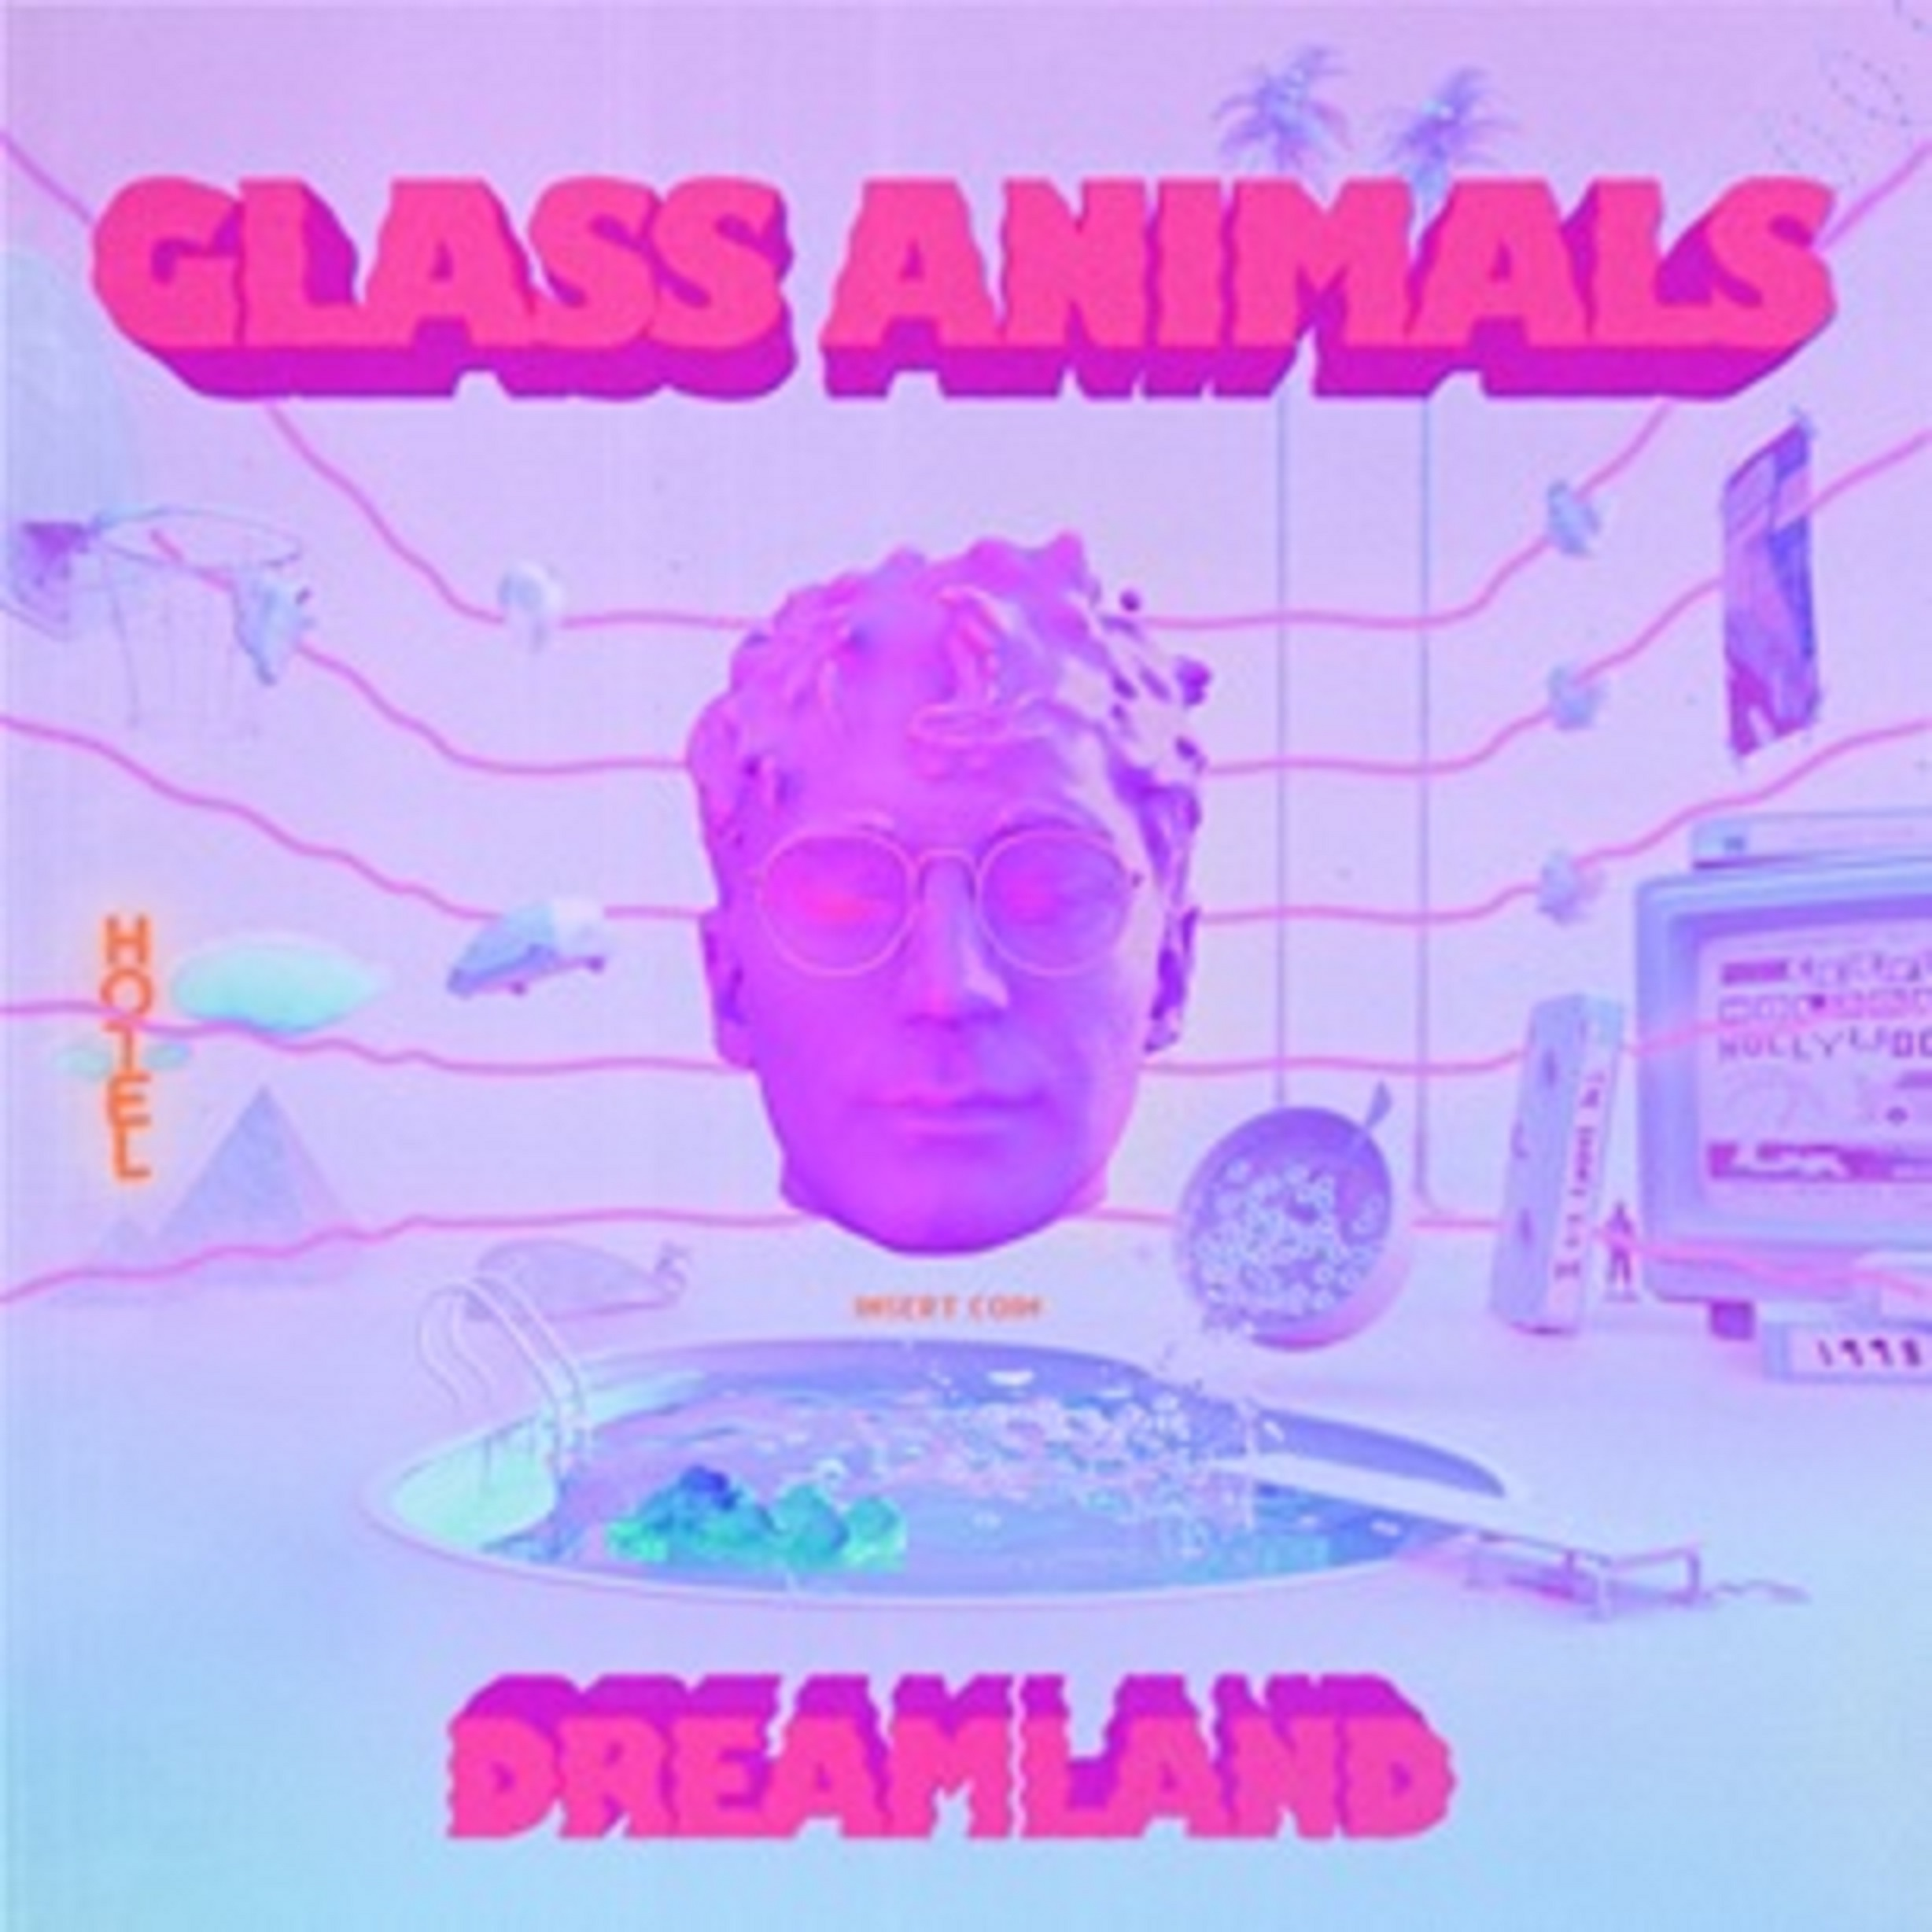 GLASS ANIMALS NEW ALBUM 'DREAMLAND' OUT TODAY